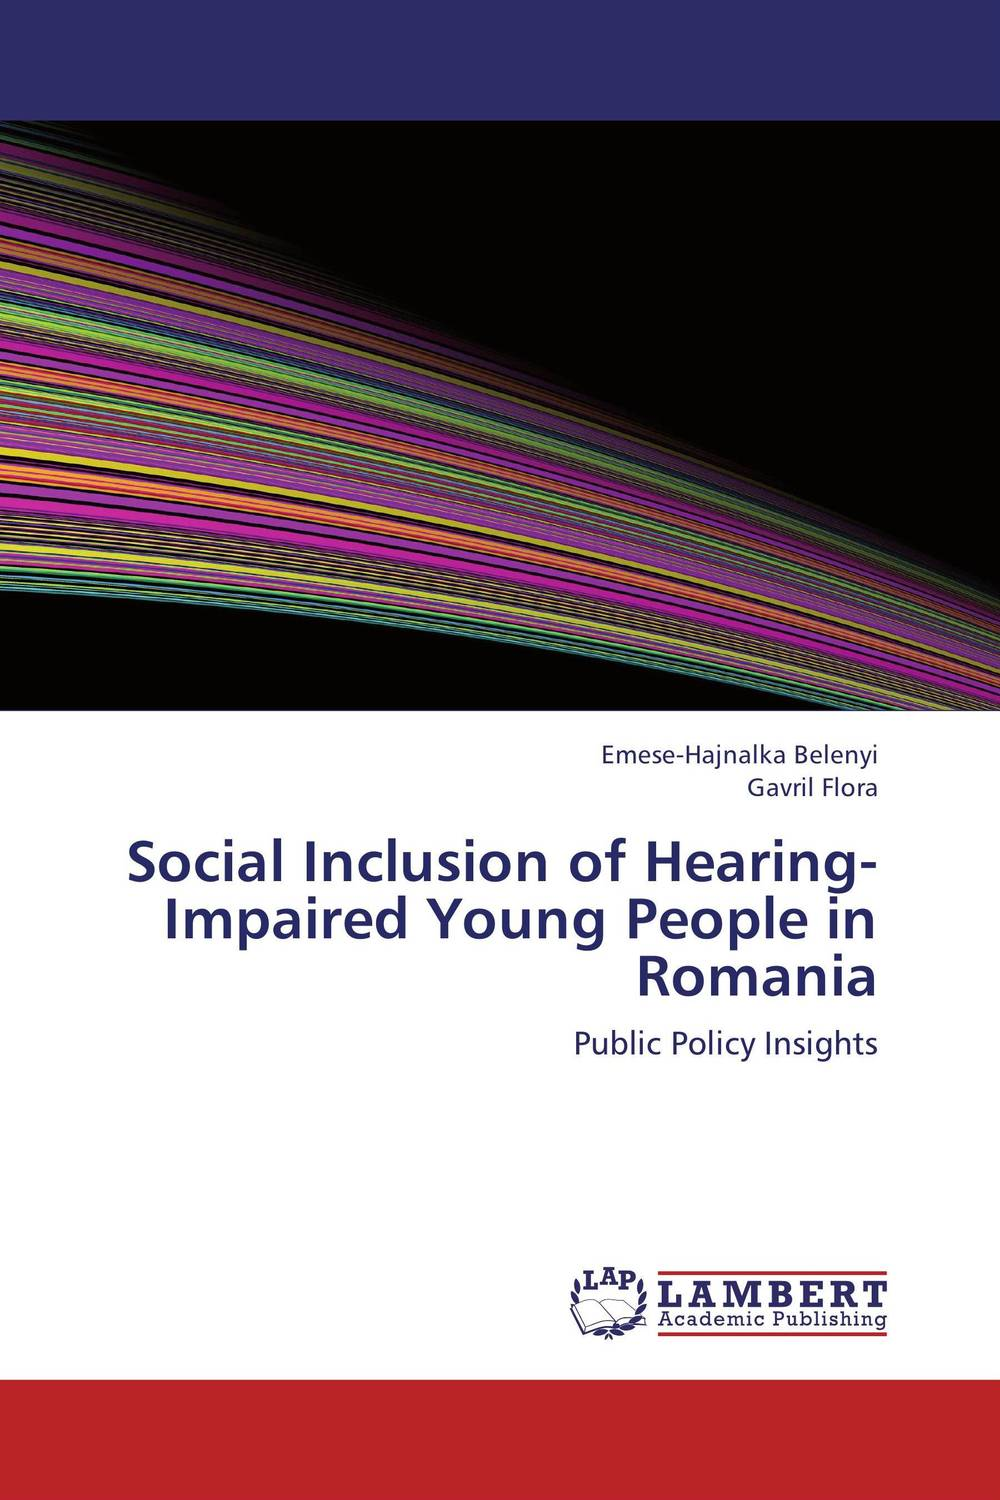 Social Inclusion of Hearing-Impaired Young People in Romania alexander mishkin how to stay young it